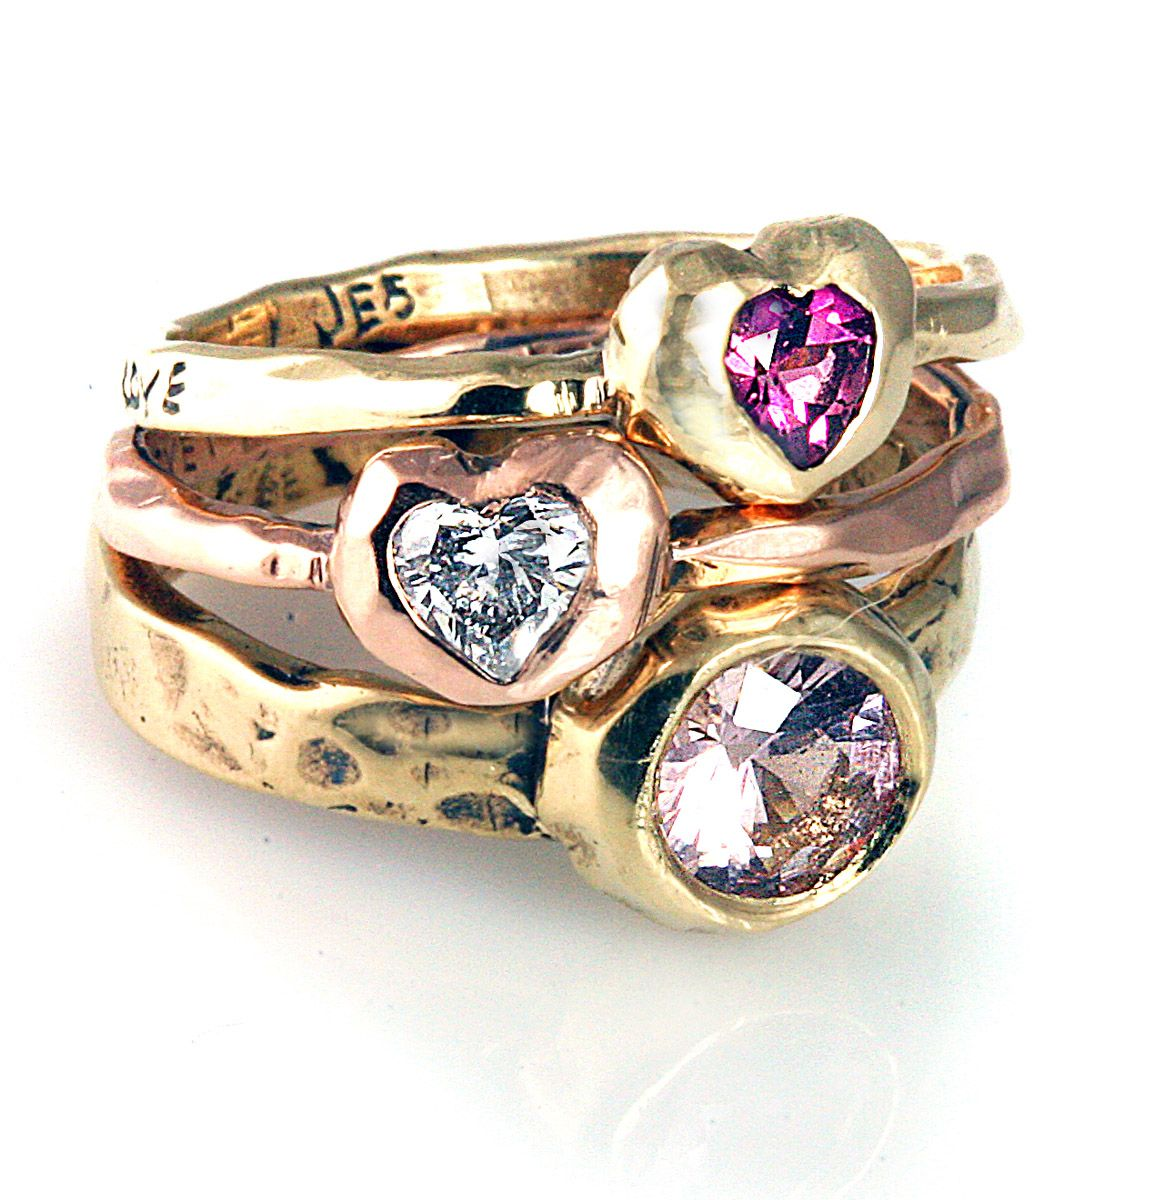 rose quartz golden gina gold ring setting architectural elegant pecious quarts products pankowski architecture rings in